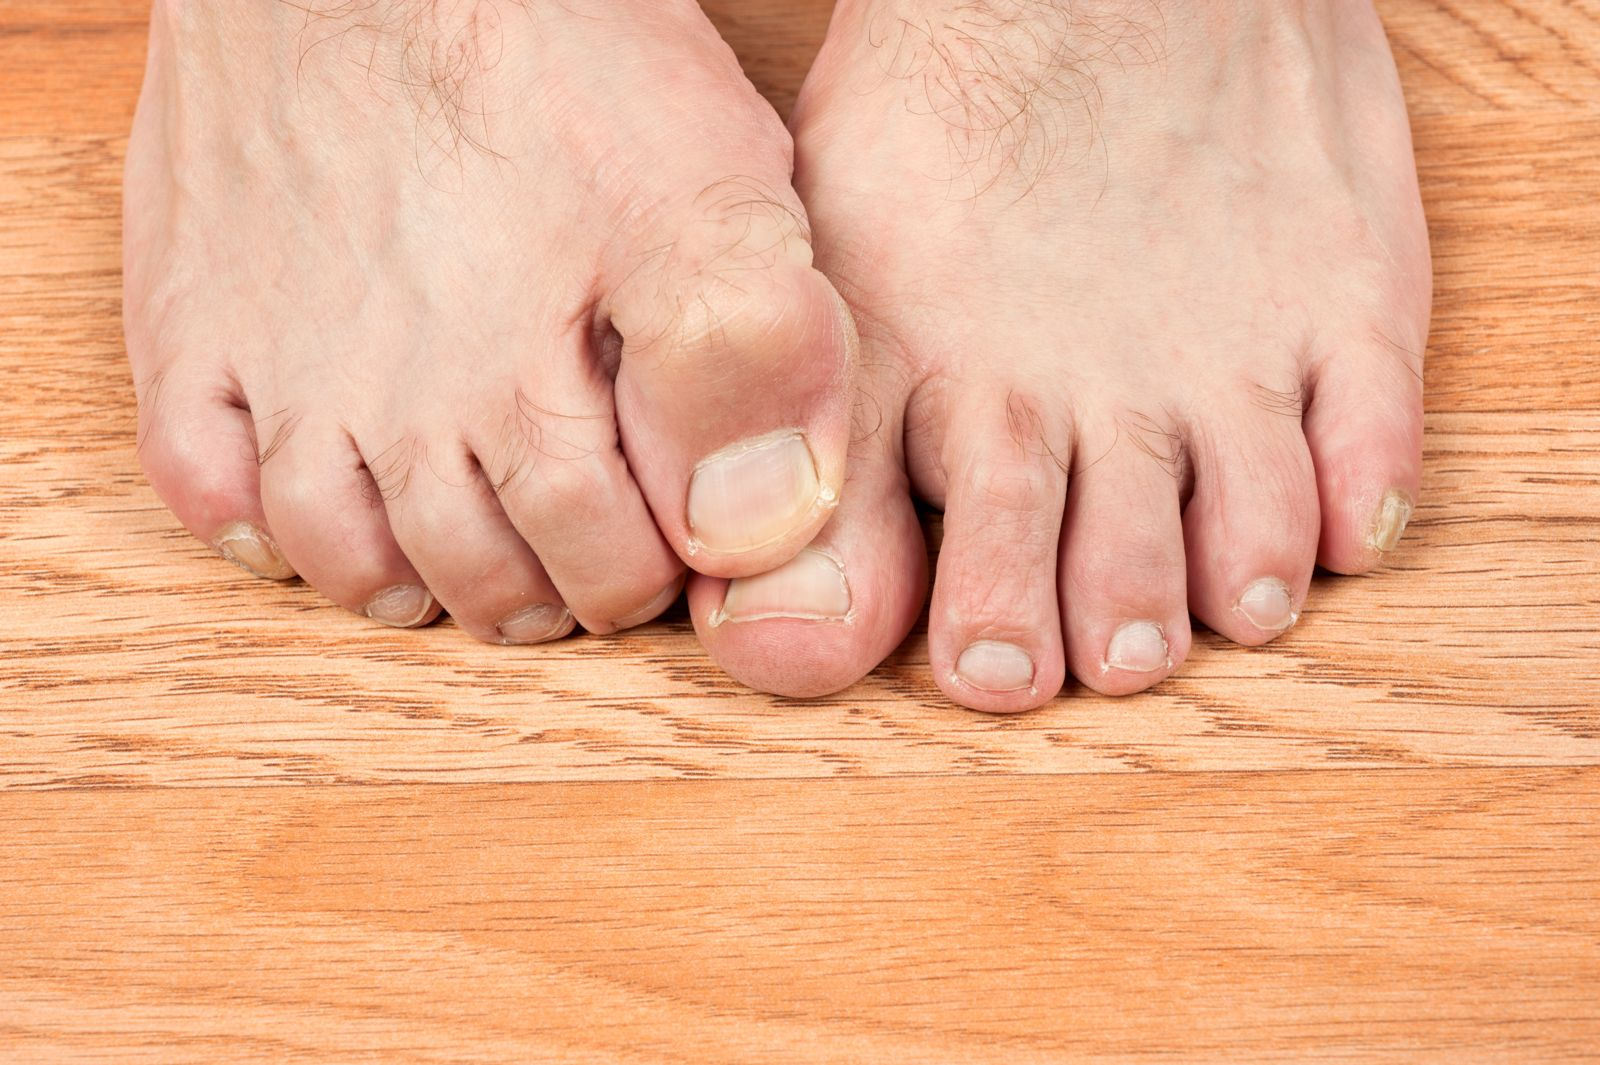 Standing on hard surfaces all day can make foot pain worse--try to find a carpet or mat that can soften the blow